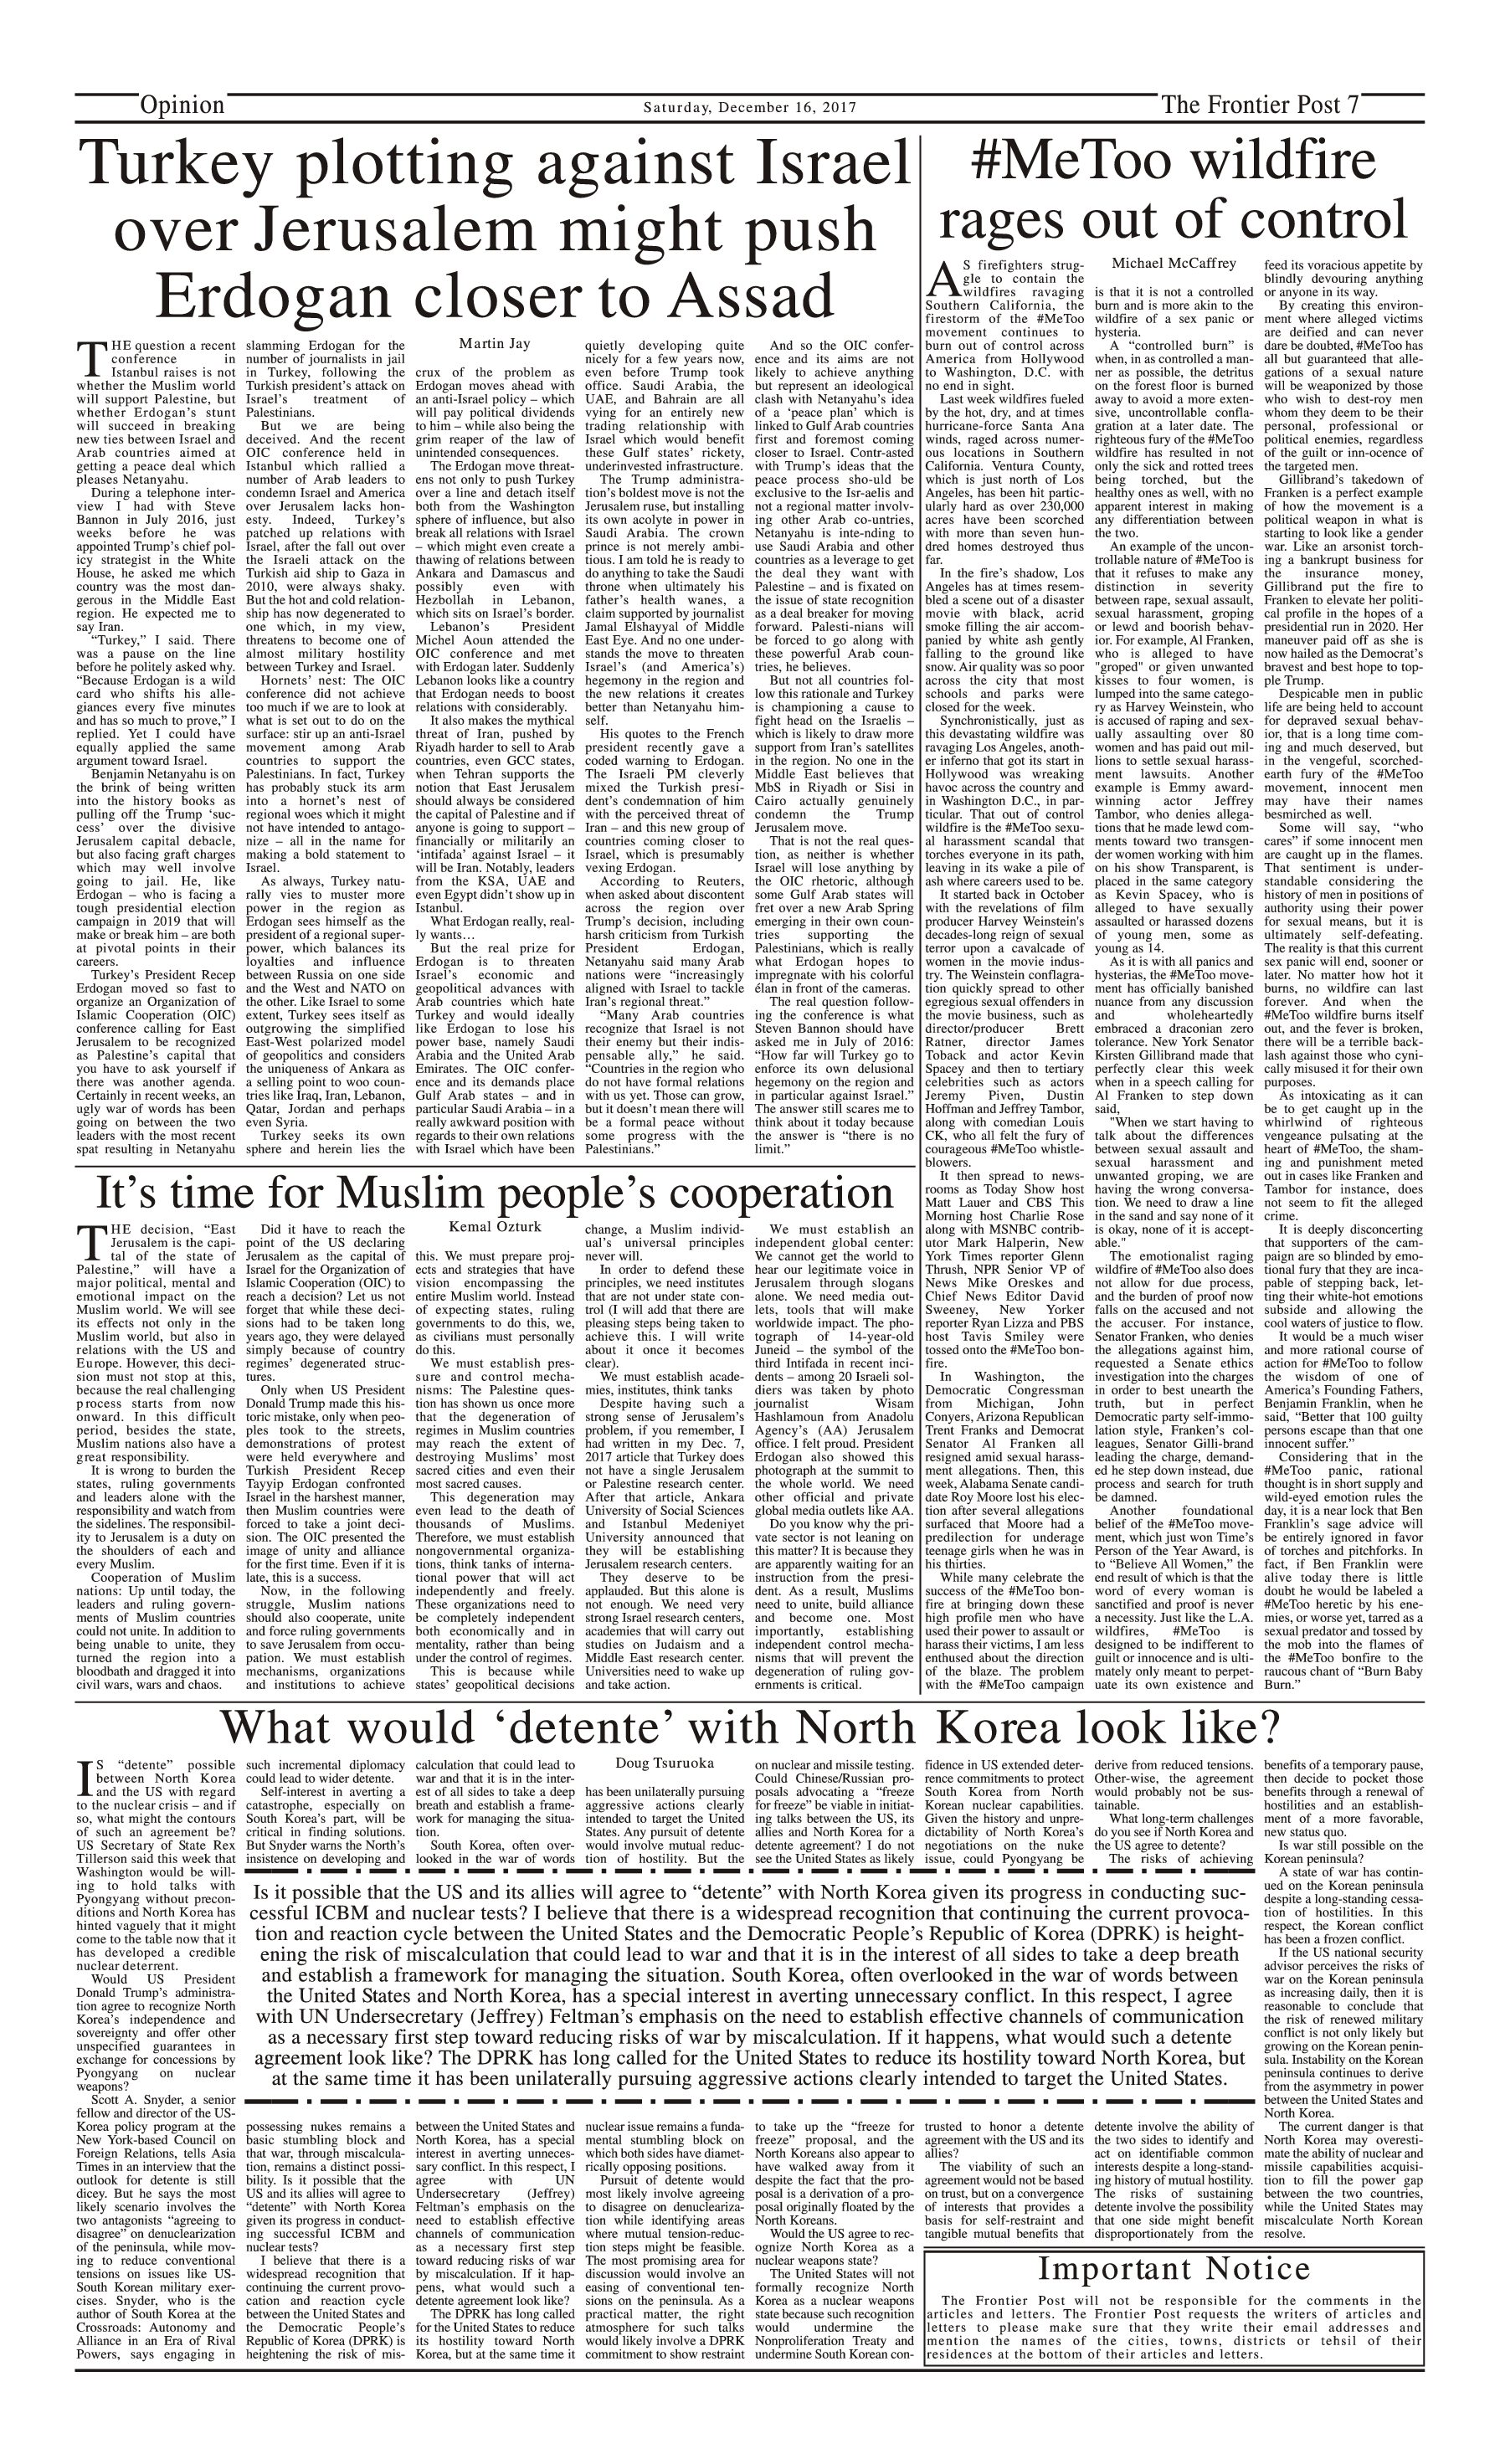 Opinion Page 16-12